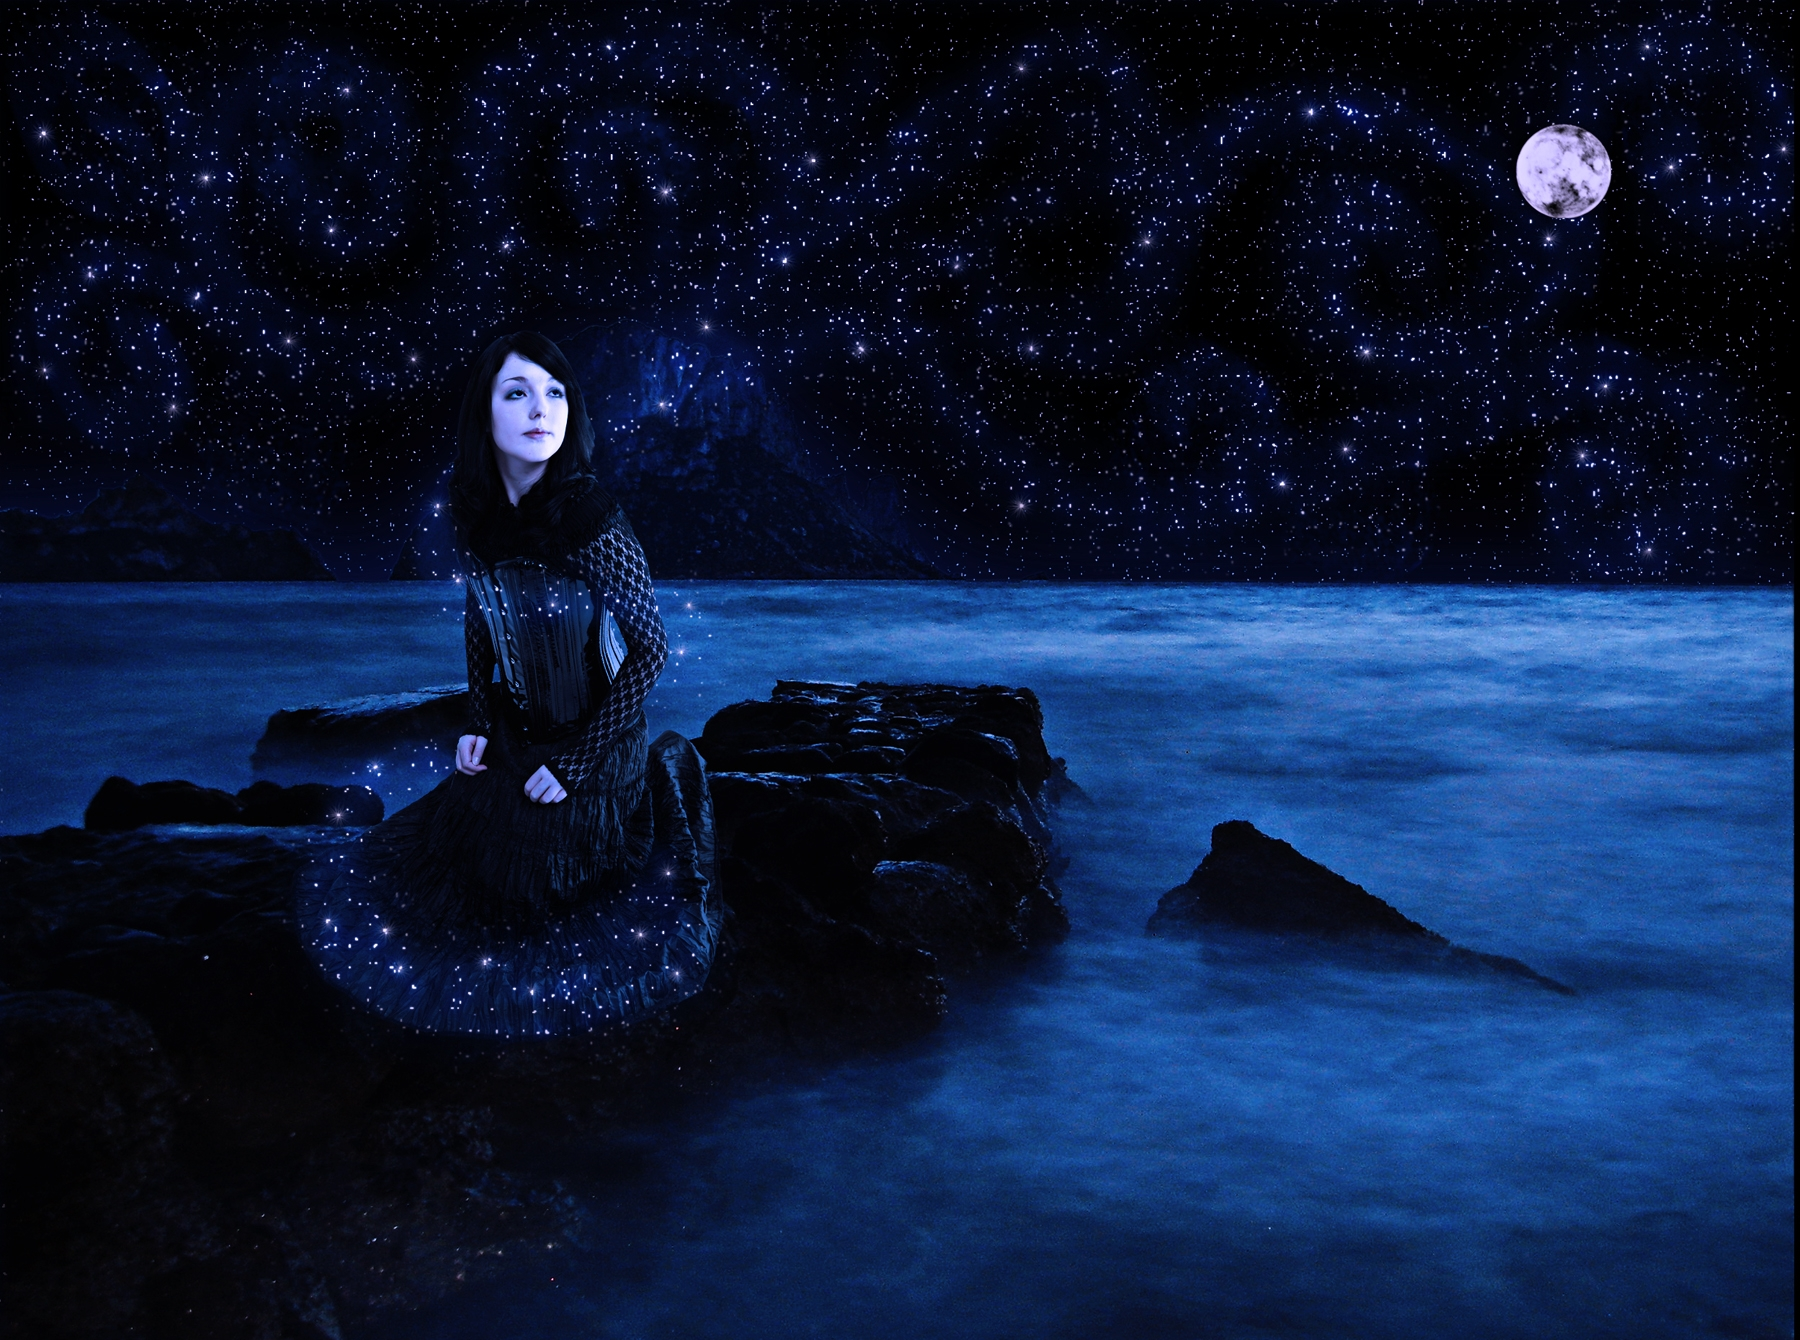 Nyx Goddess Of Night Picture By Musicj19 For Greek Gods Photoshop